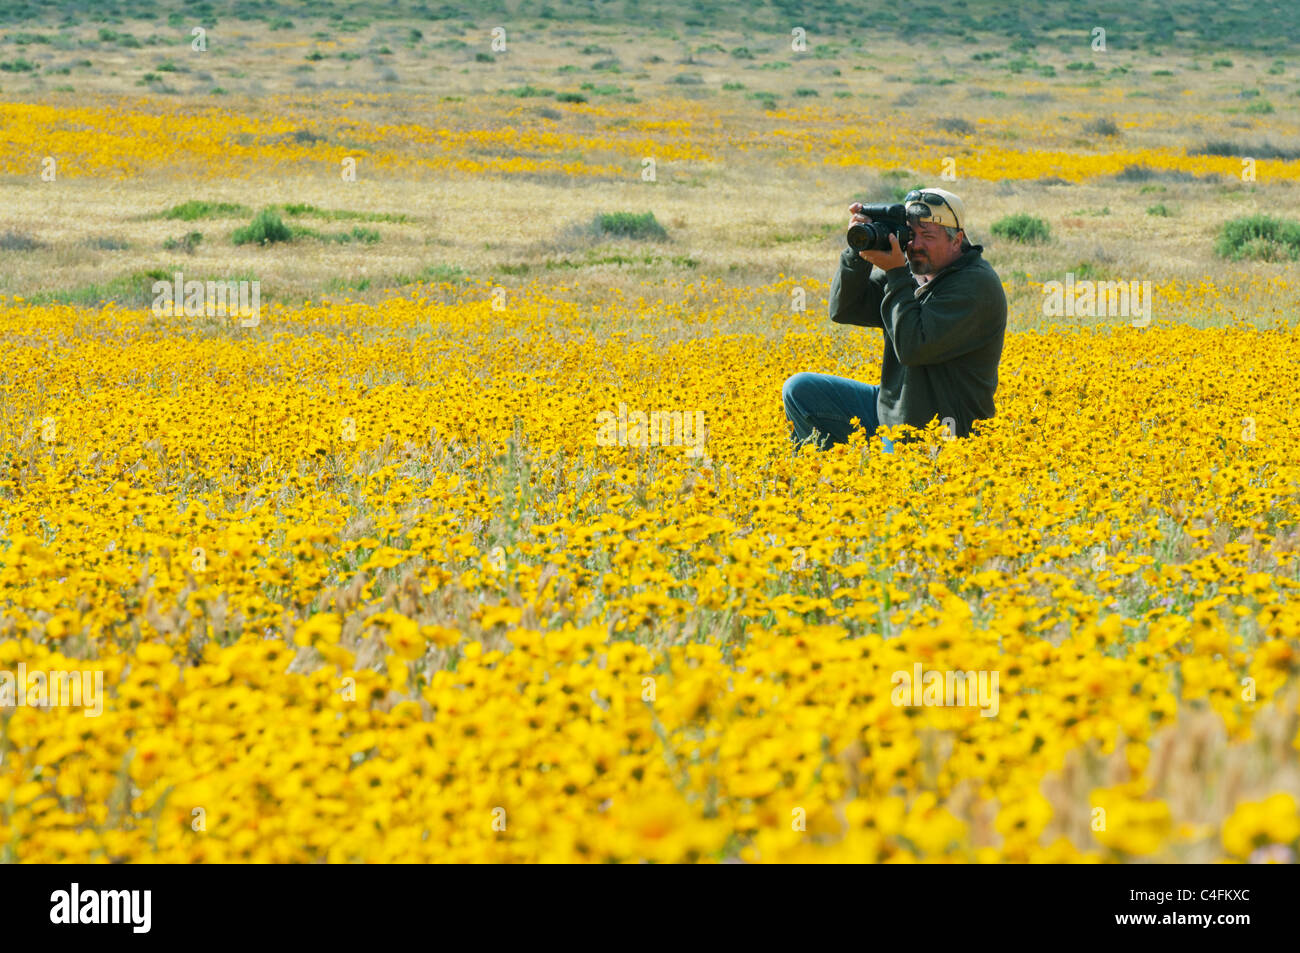 Photographer Steve Shuey photographing carpets of wildflowers, Carrizo Plain National Monument, April - Stock Image